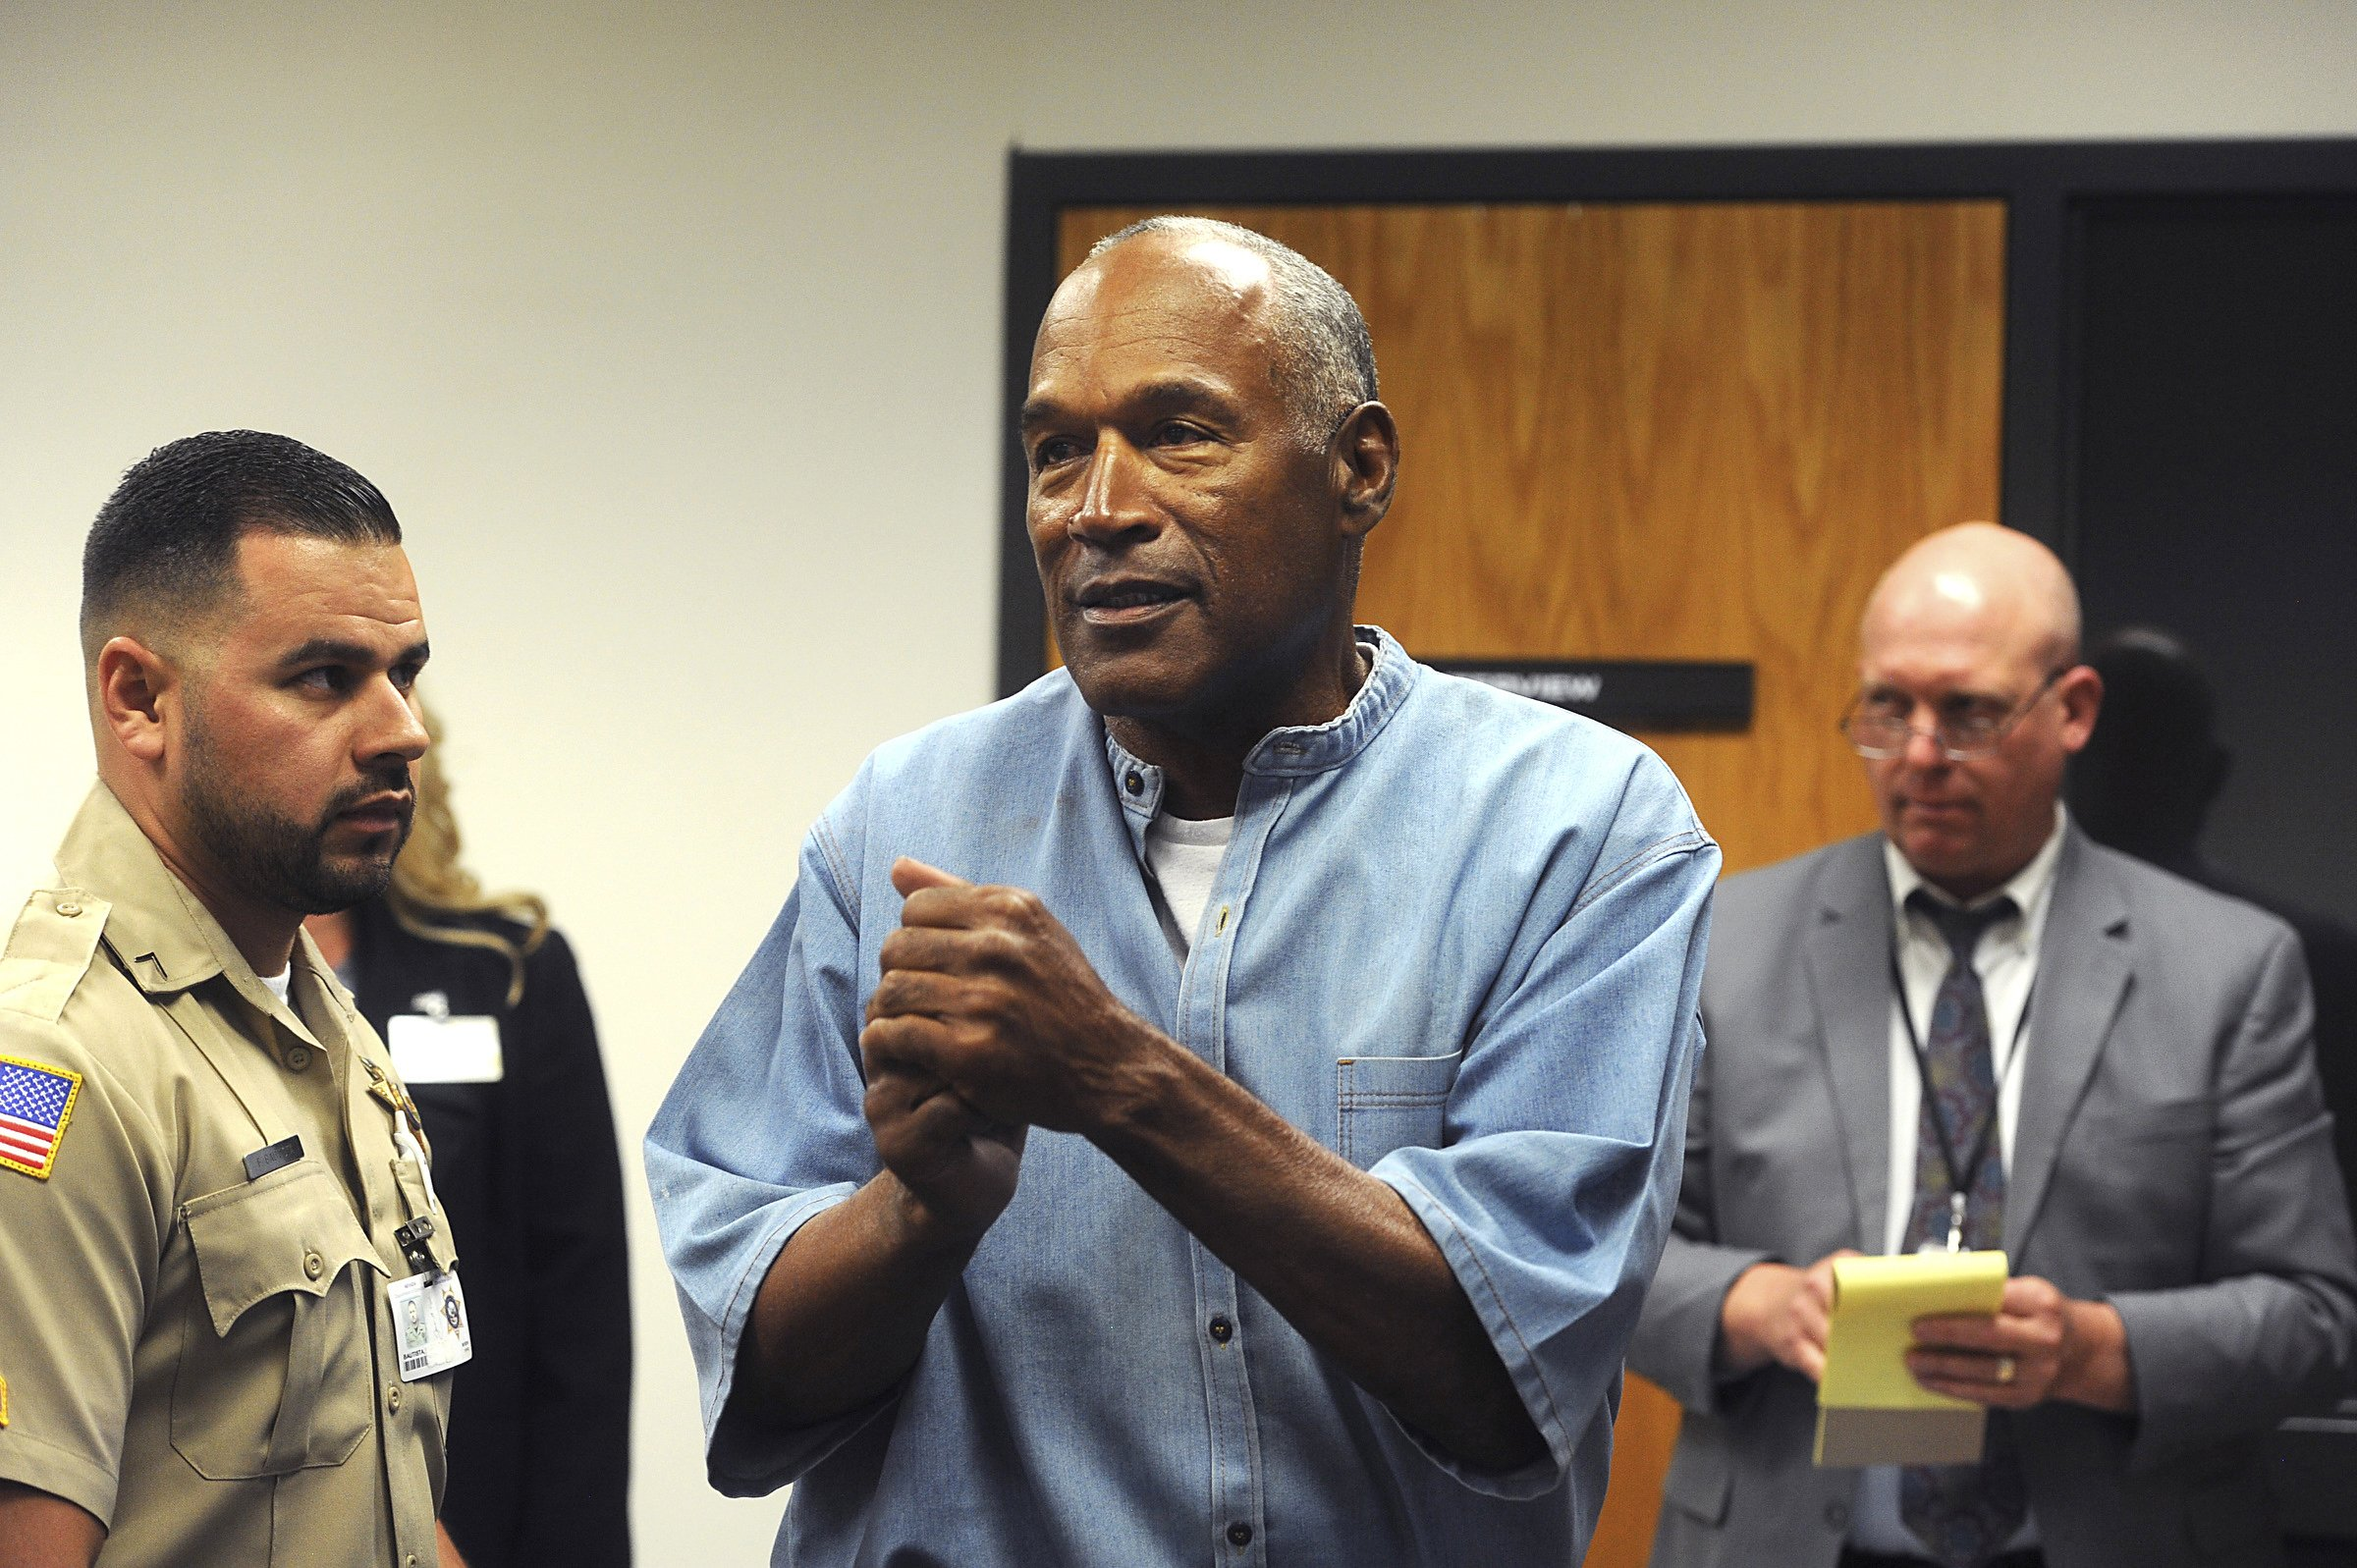 O.J. Simpson triumphant, others devastated as he gets parole